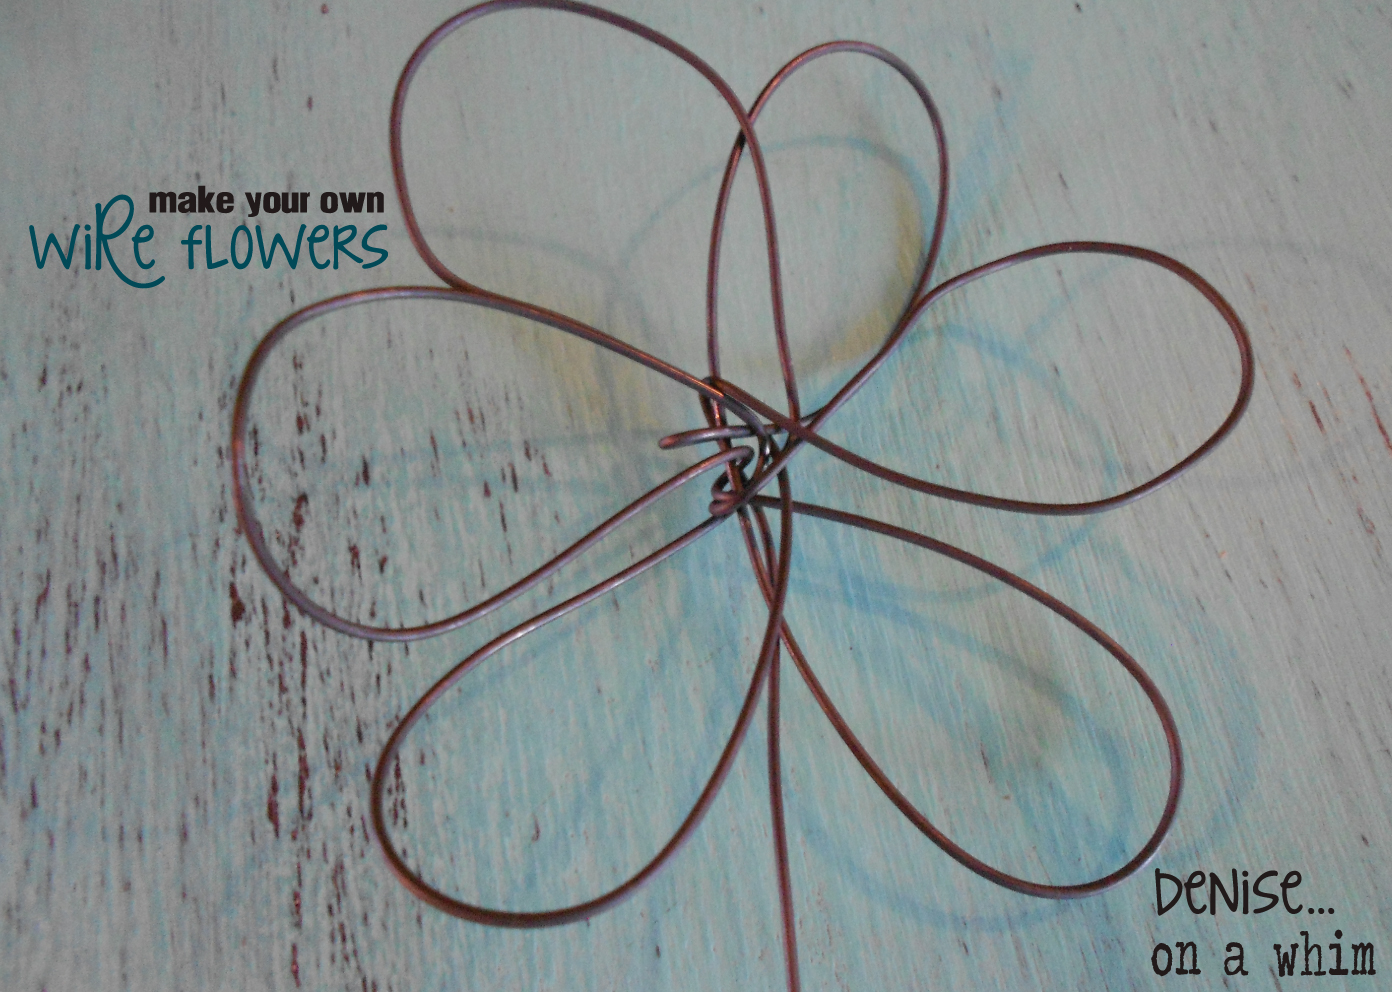 denise...on a whim: Make Your Own Wire Flowers